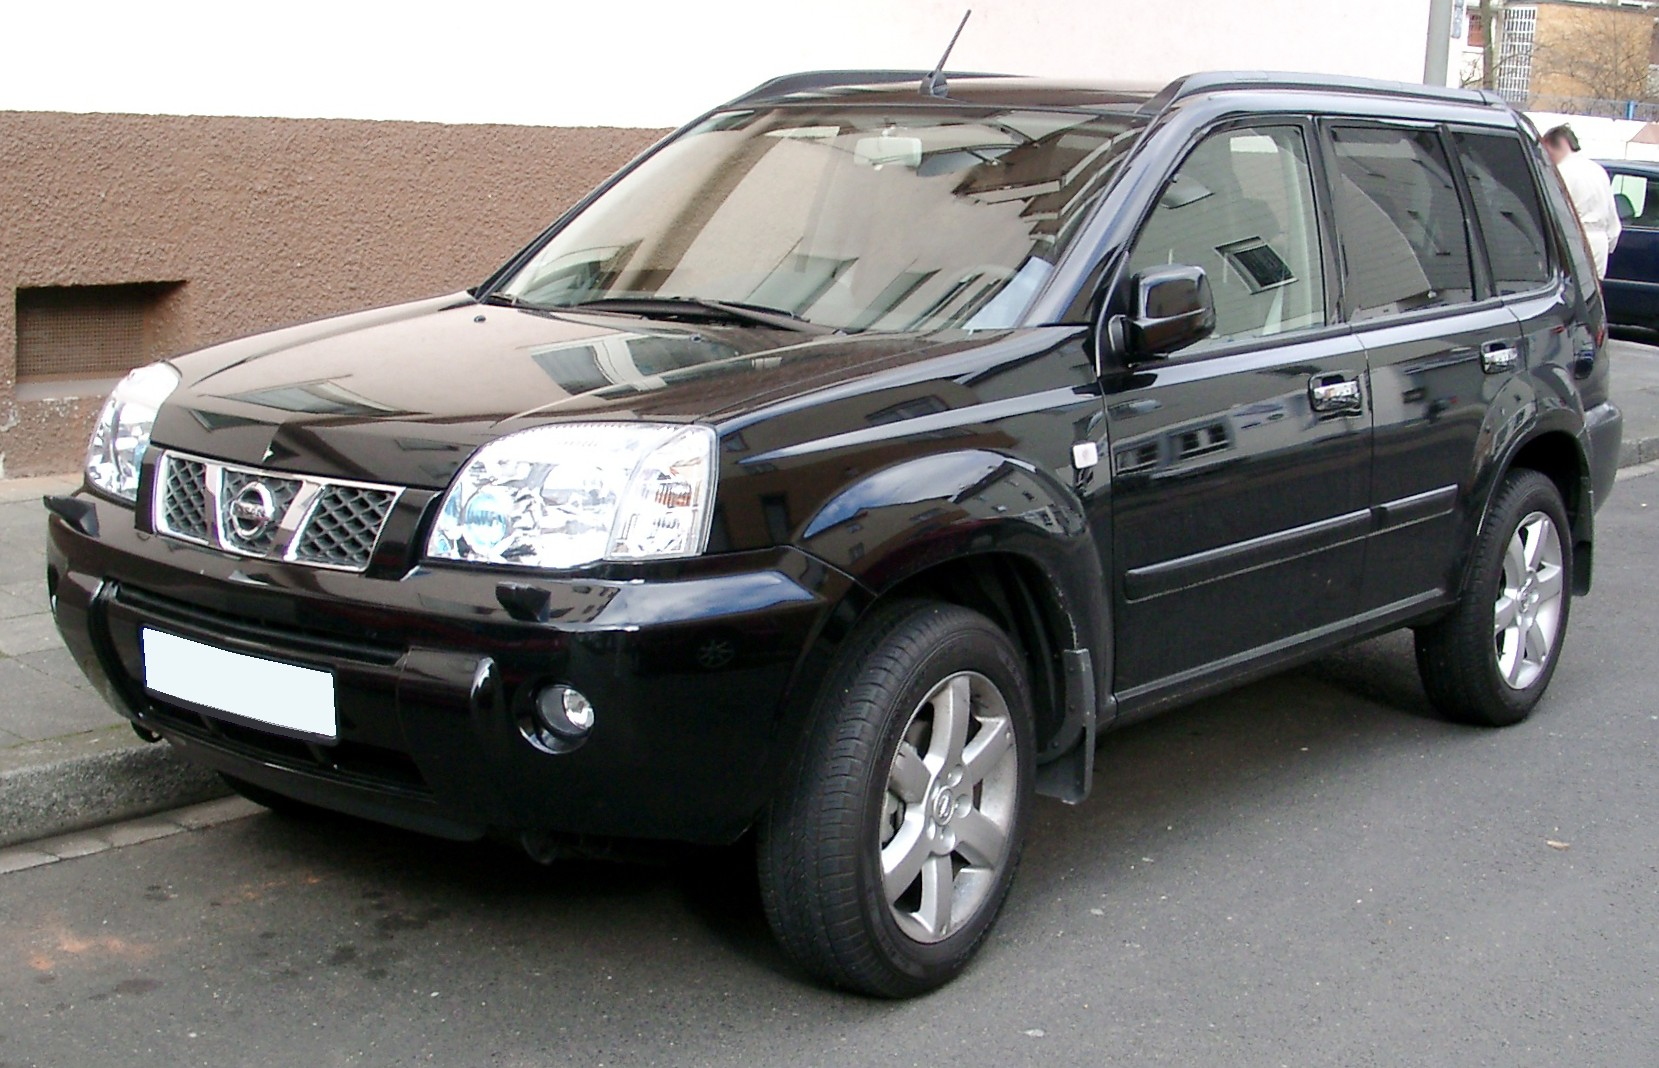 Nissan trailrunner photo - 2